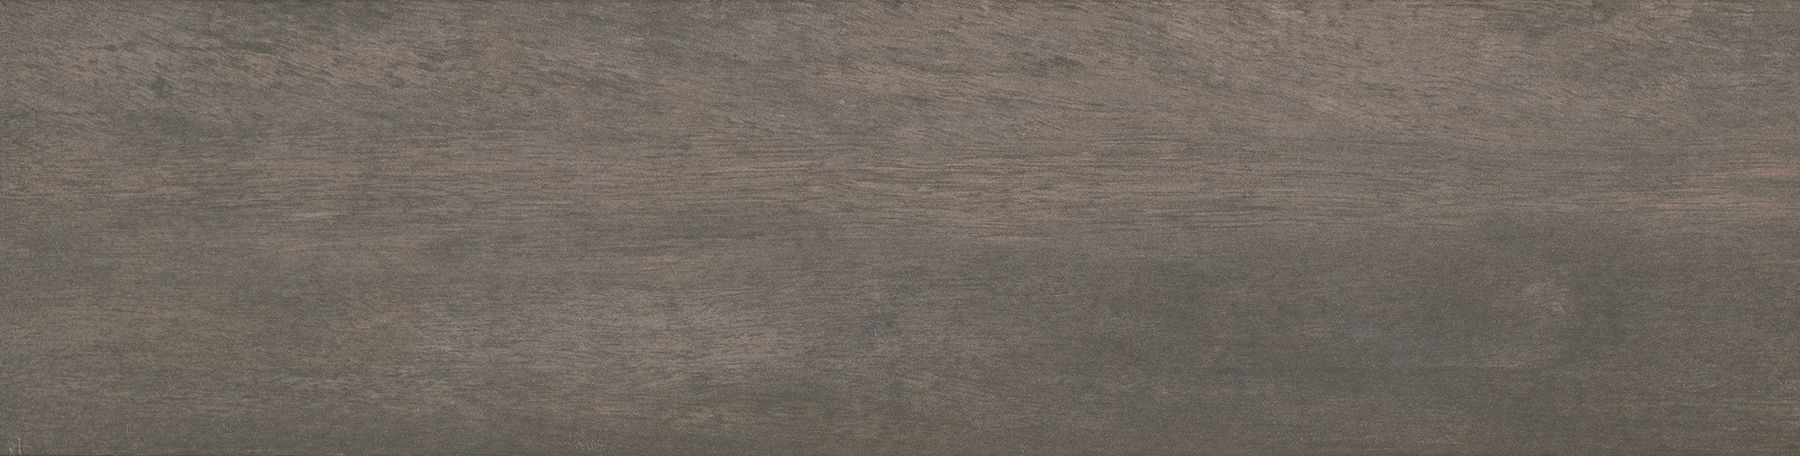 Cedrick Wenge Wood Look Ceramic Tiles Wood Look Flooring By Roca